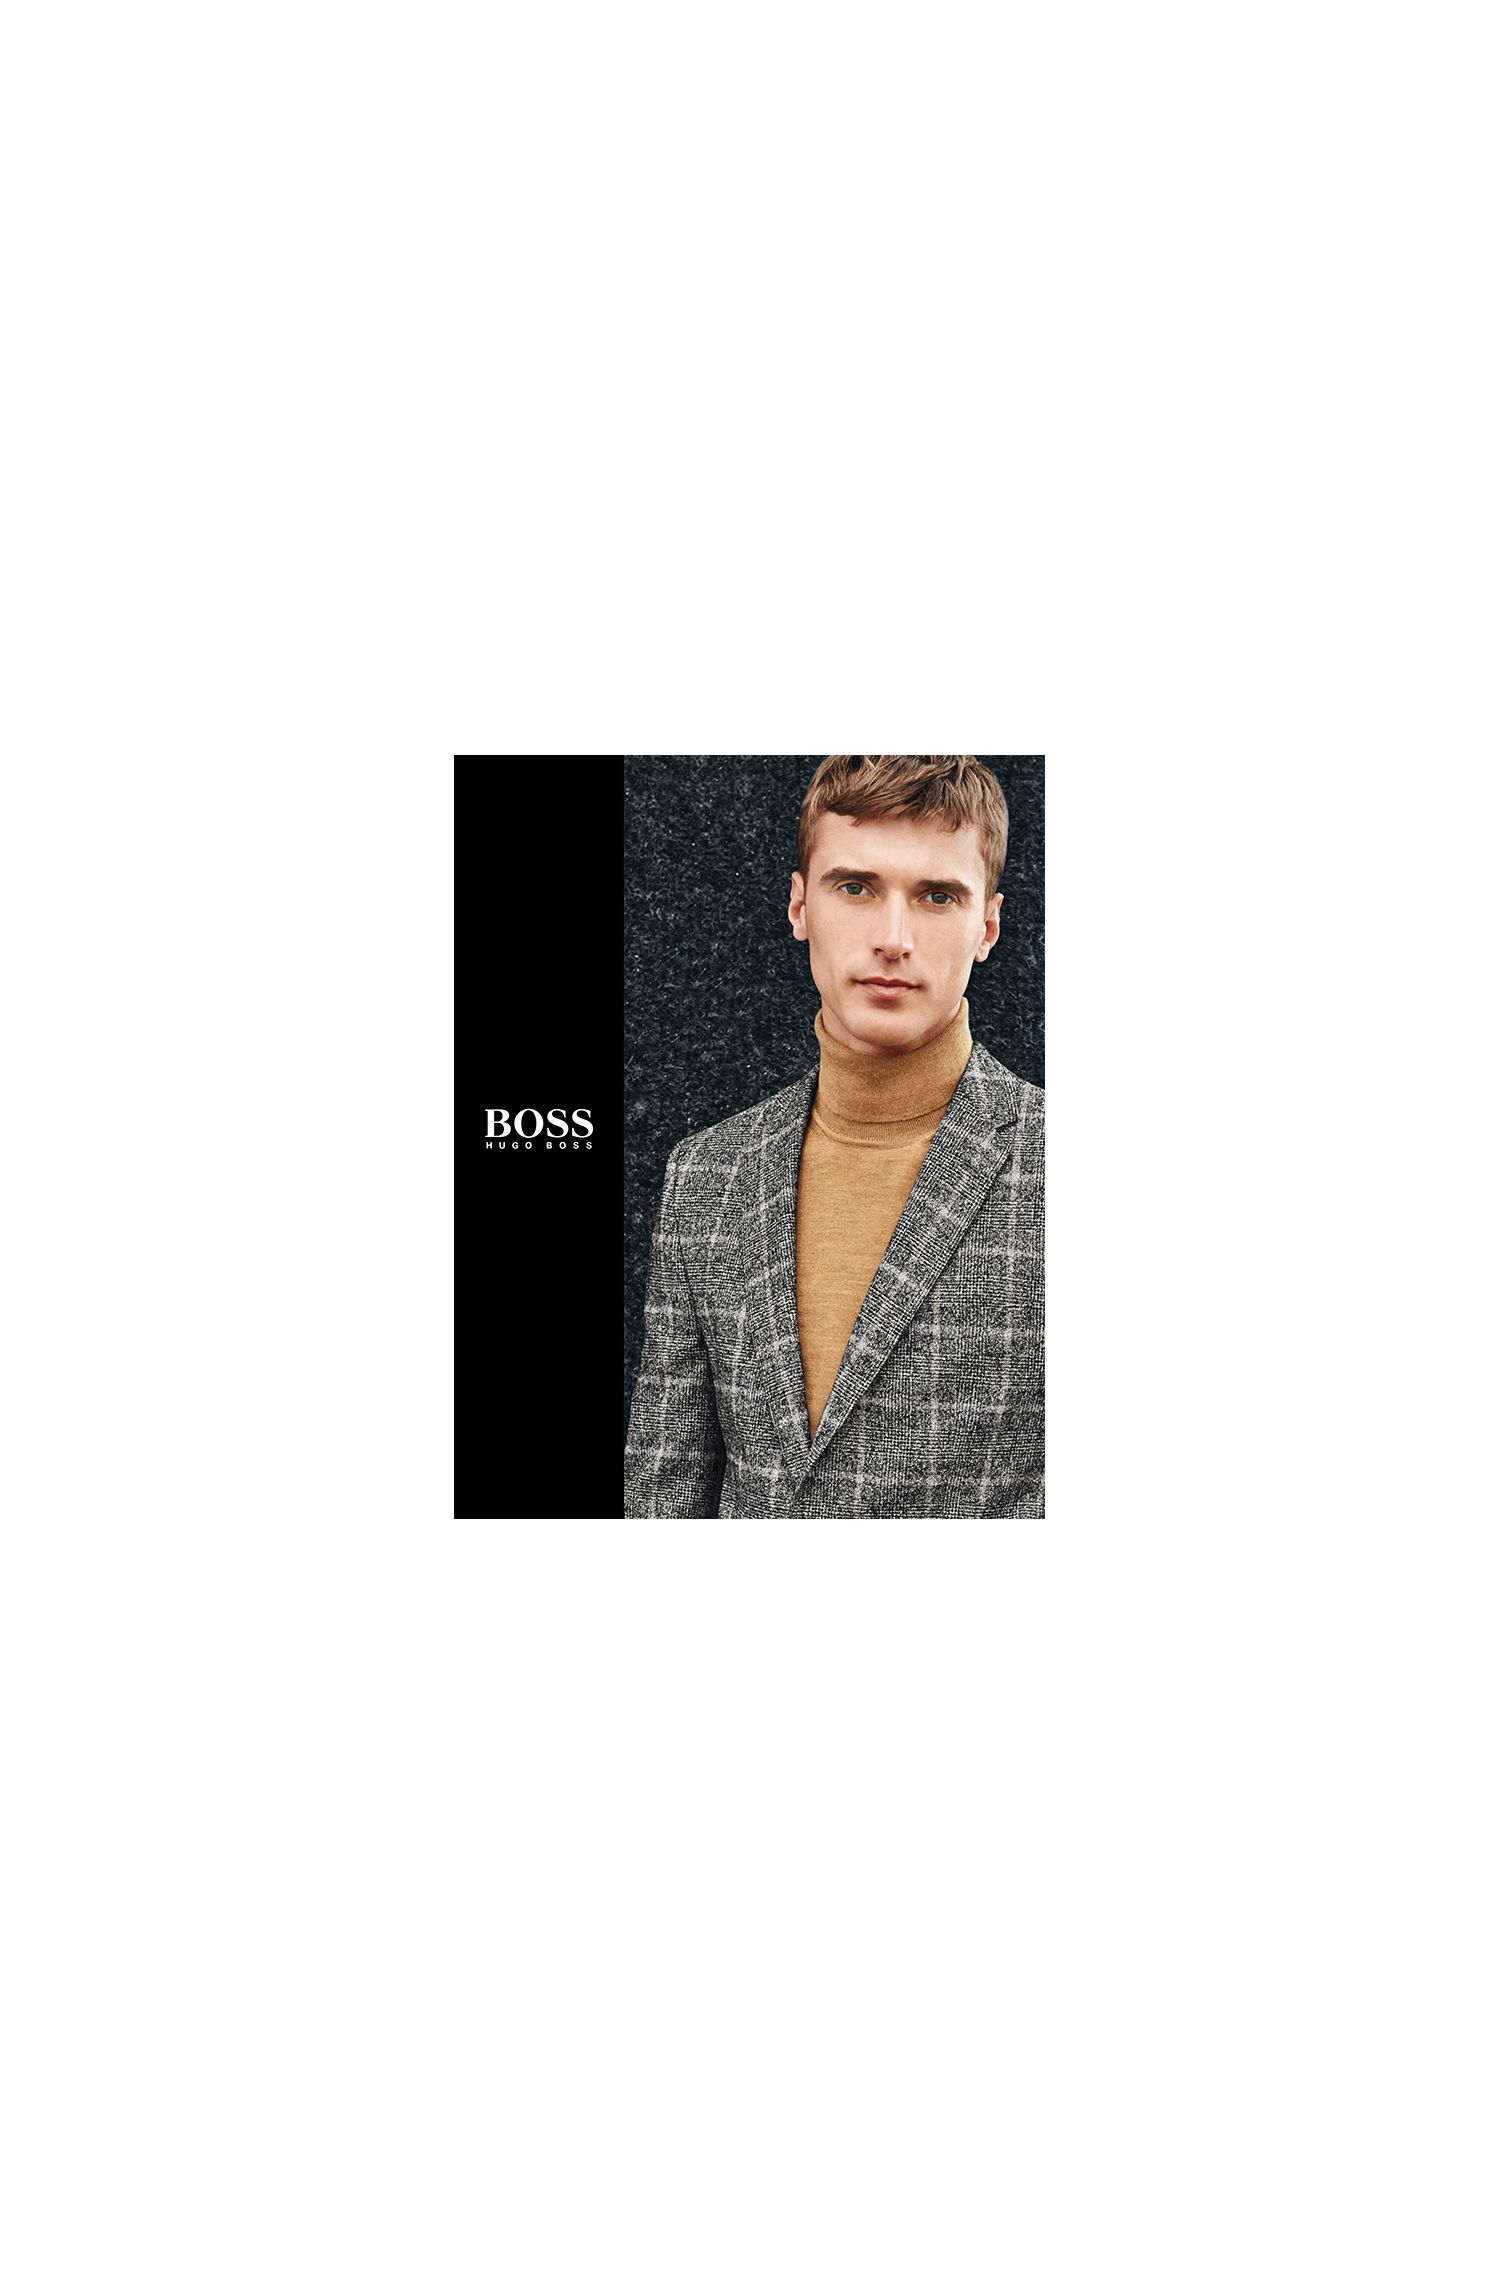 BOSS menswear booklet